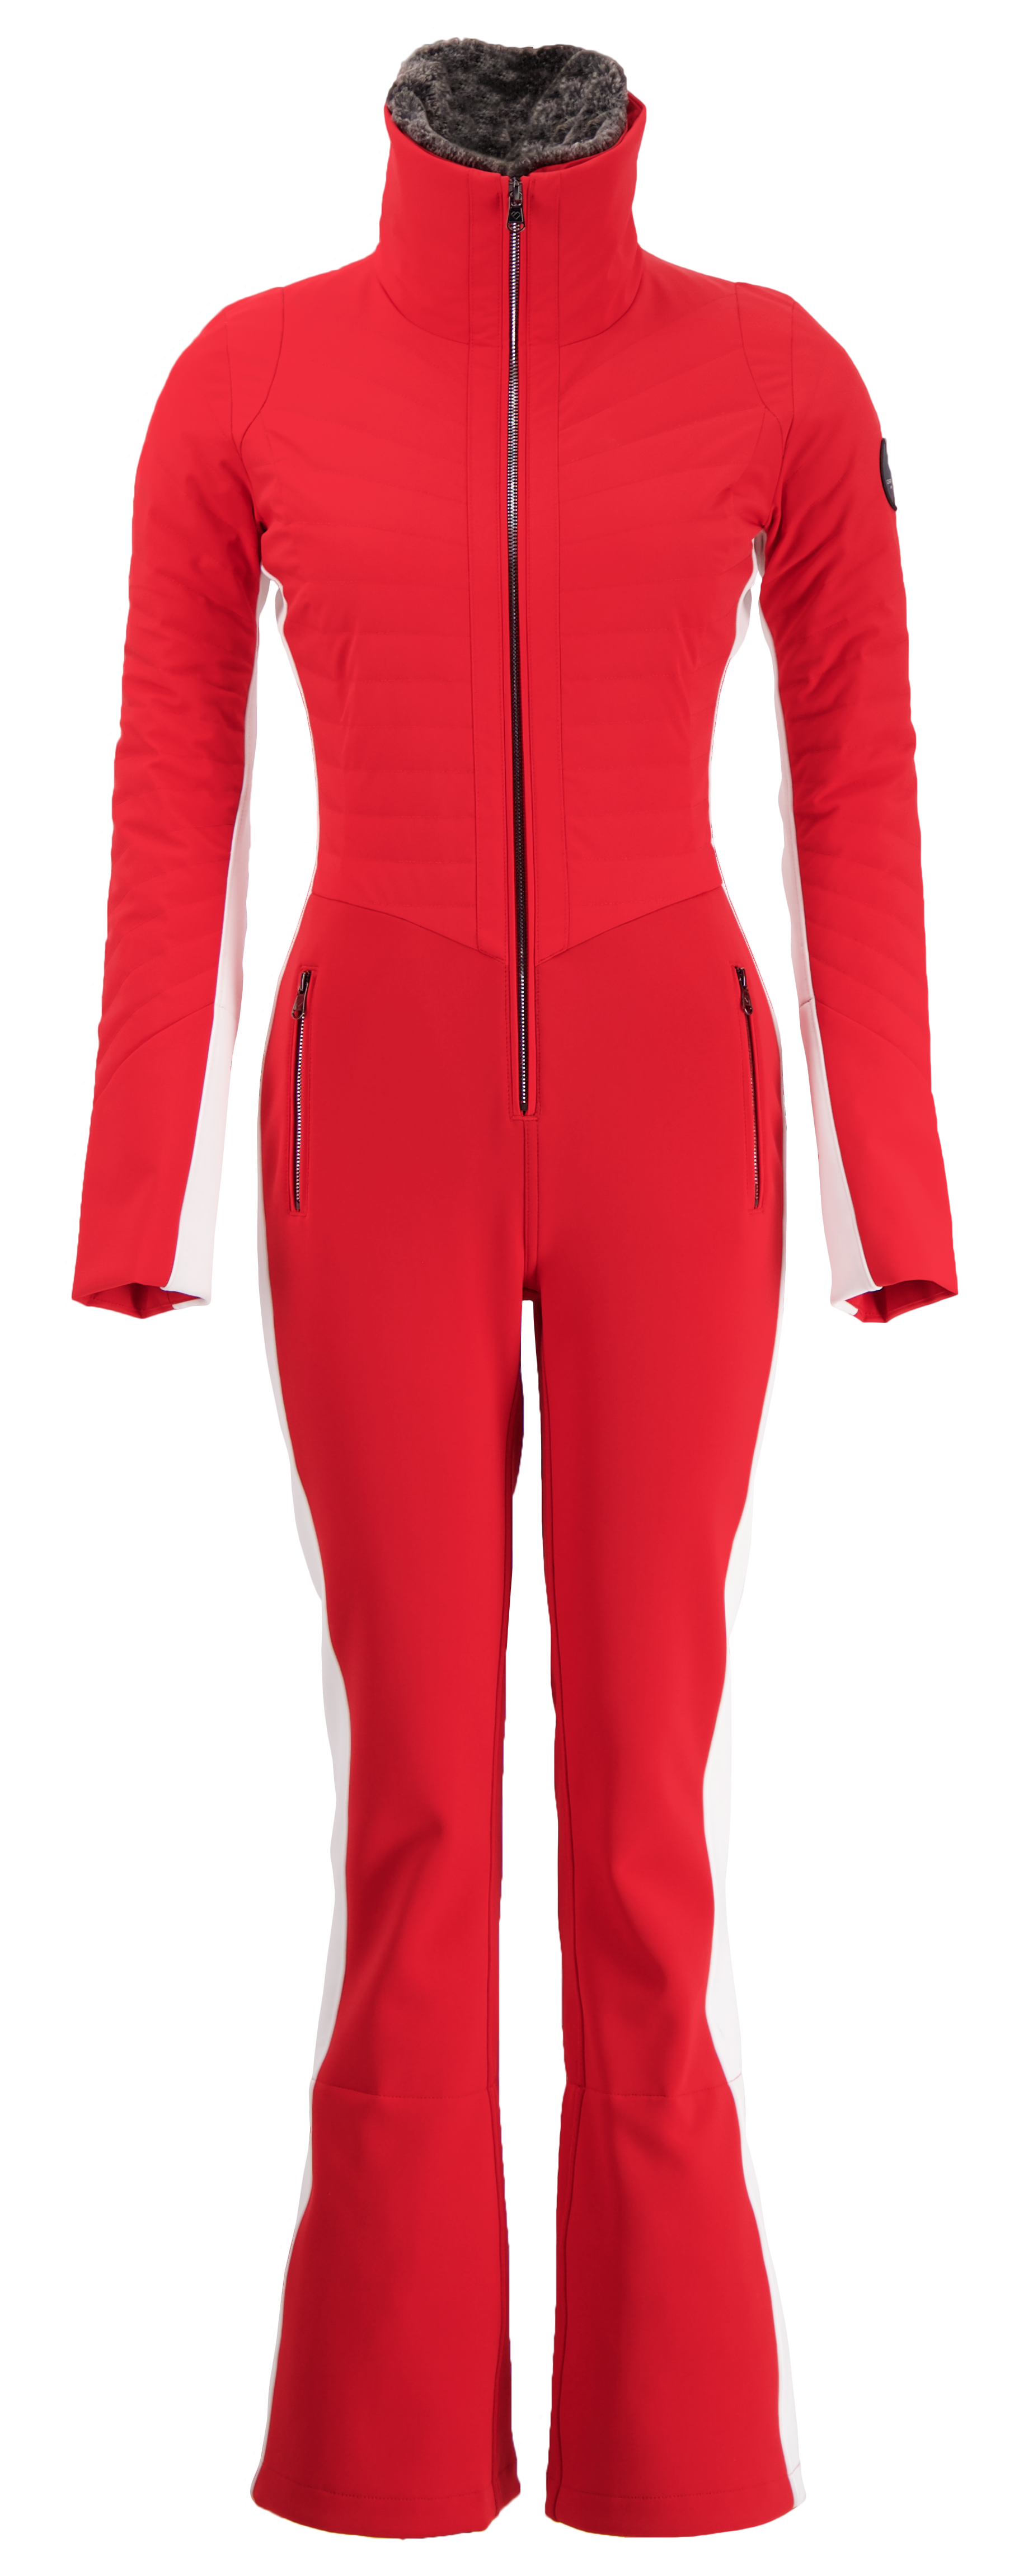 One-piece snowsuits keep the snow out, but you look like a goober. So be discreet and go one-piece underneath your jacket and pants with this merino-wool suit. The lightweight, next-to-skin baselayer hearkens back to the red union suits of yore but has some modern design tweaks, like odor-resistant merino wool, a hood, thumb loops, and a drawstring waist. And the old trapdoor in the seat has been replaced by a zipper that runs from just below the waist all the way around to the rear. [$150; io-bio.com]  —S.G.